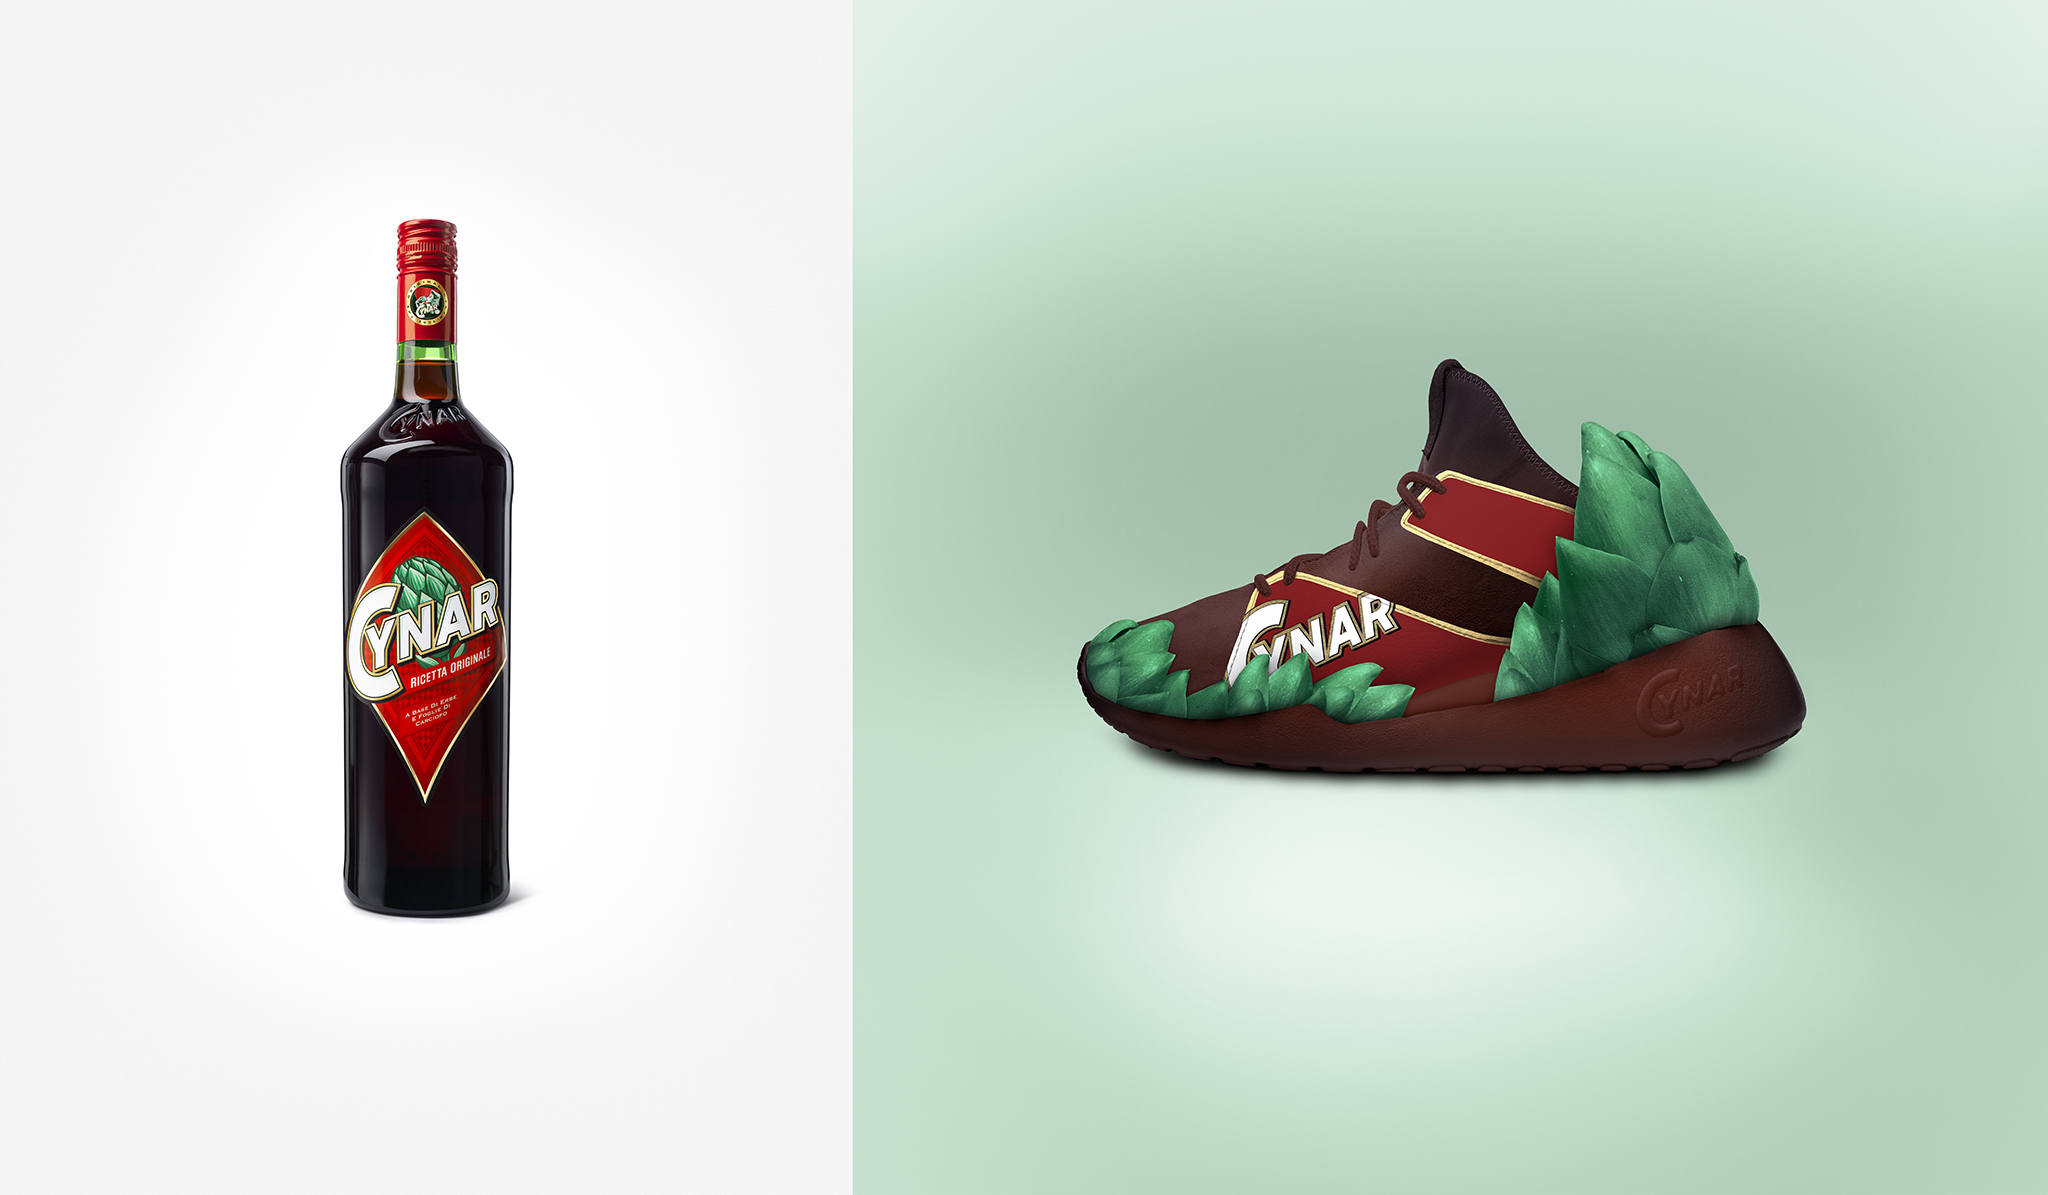 Sneakered 011 Cynar